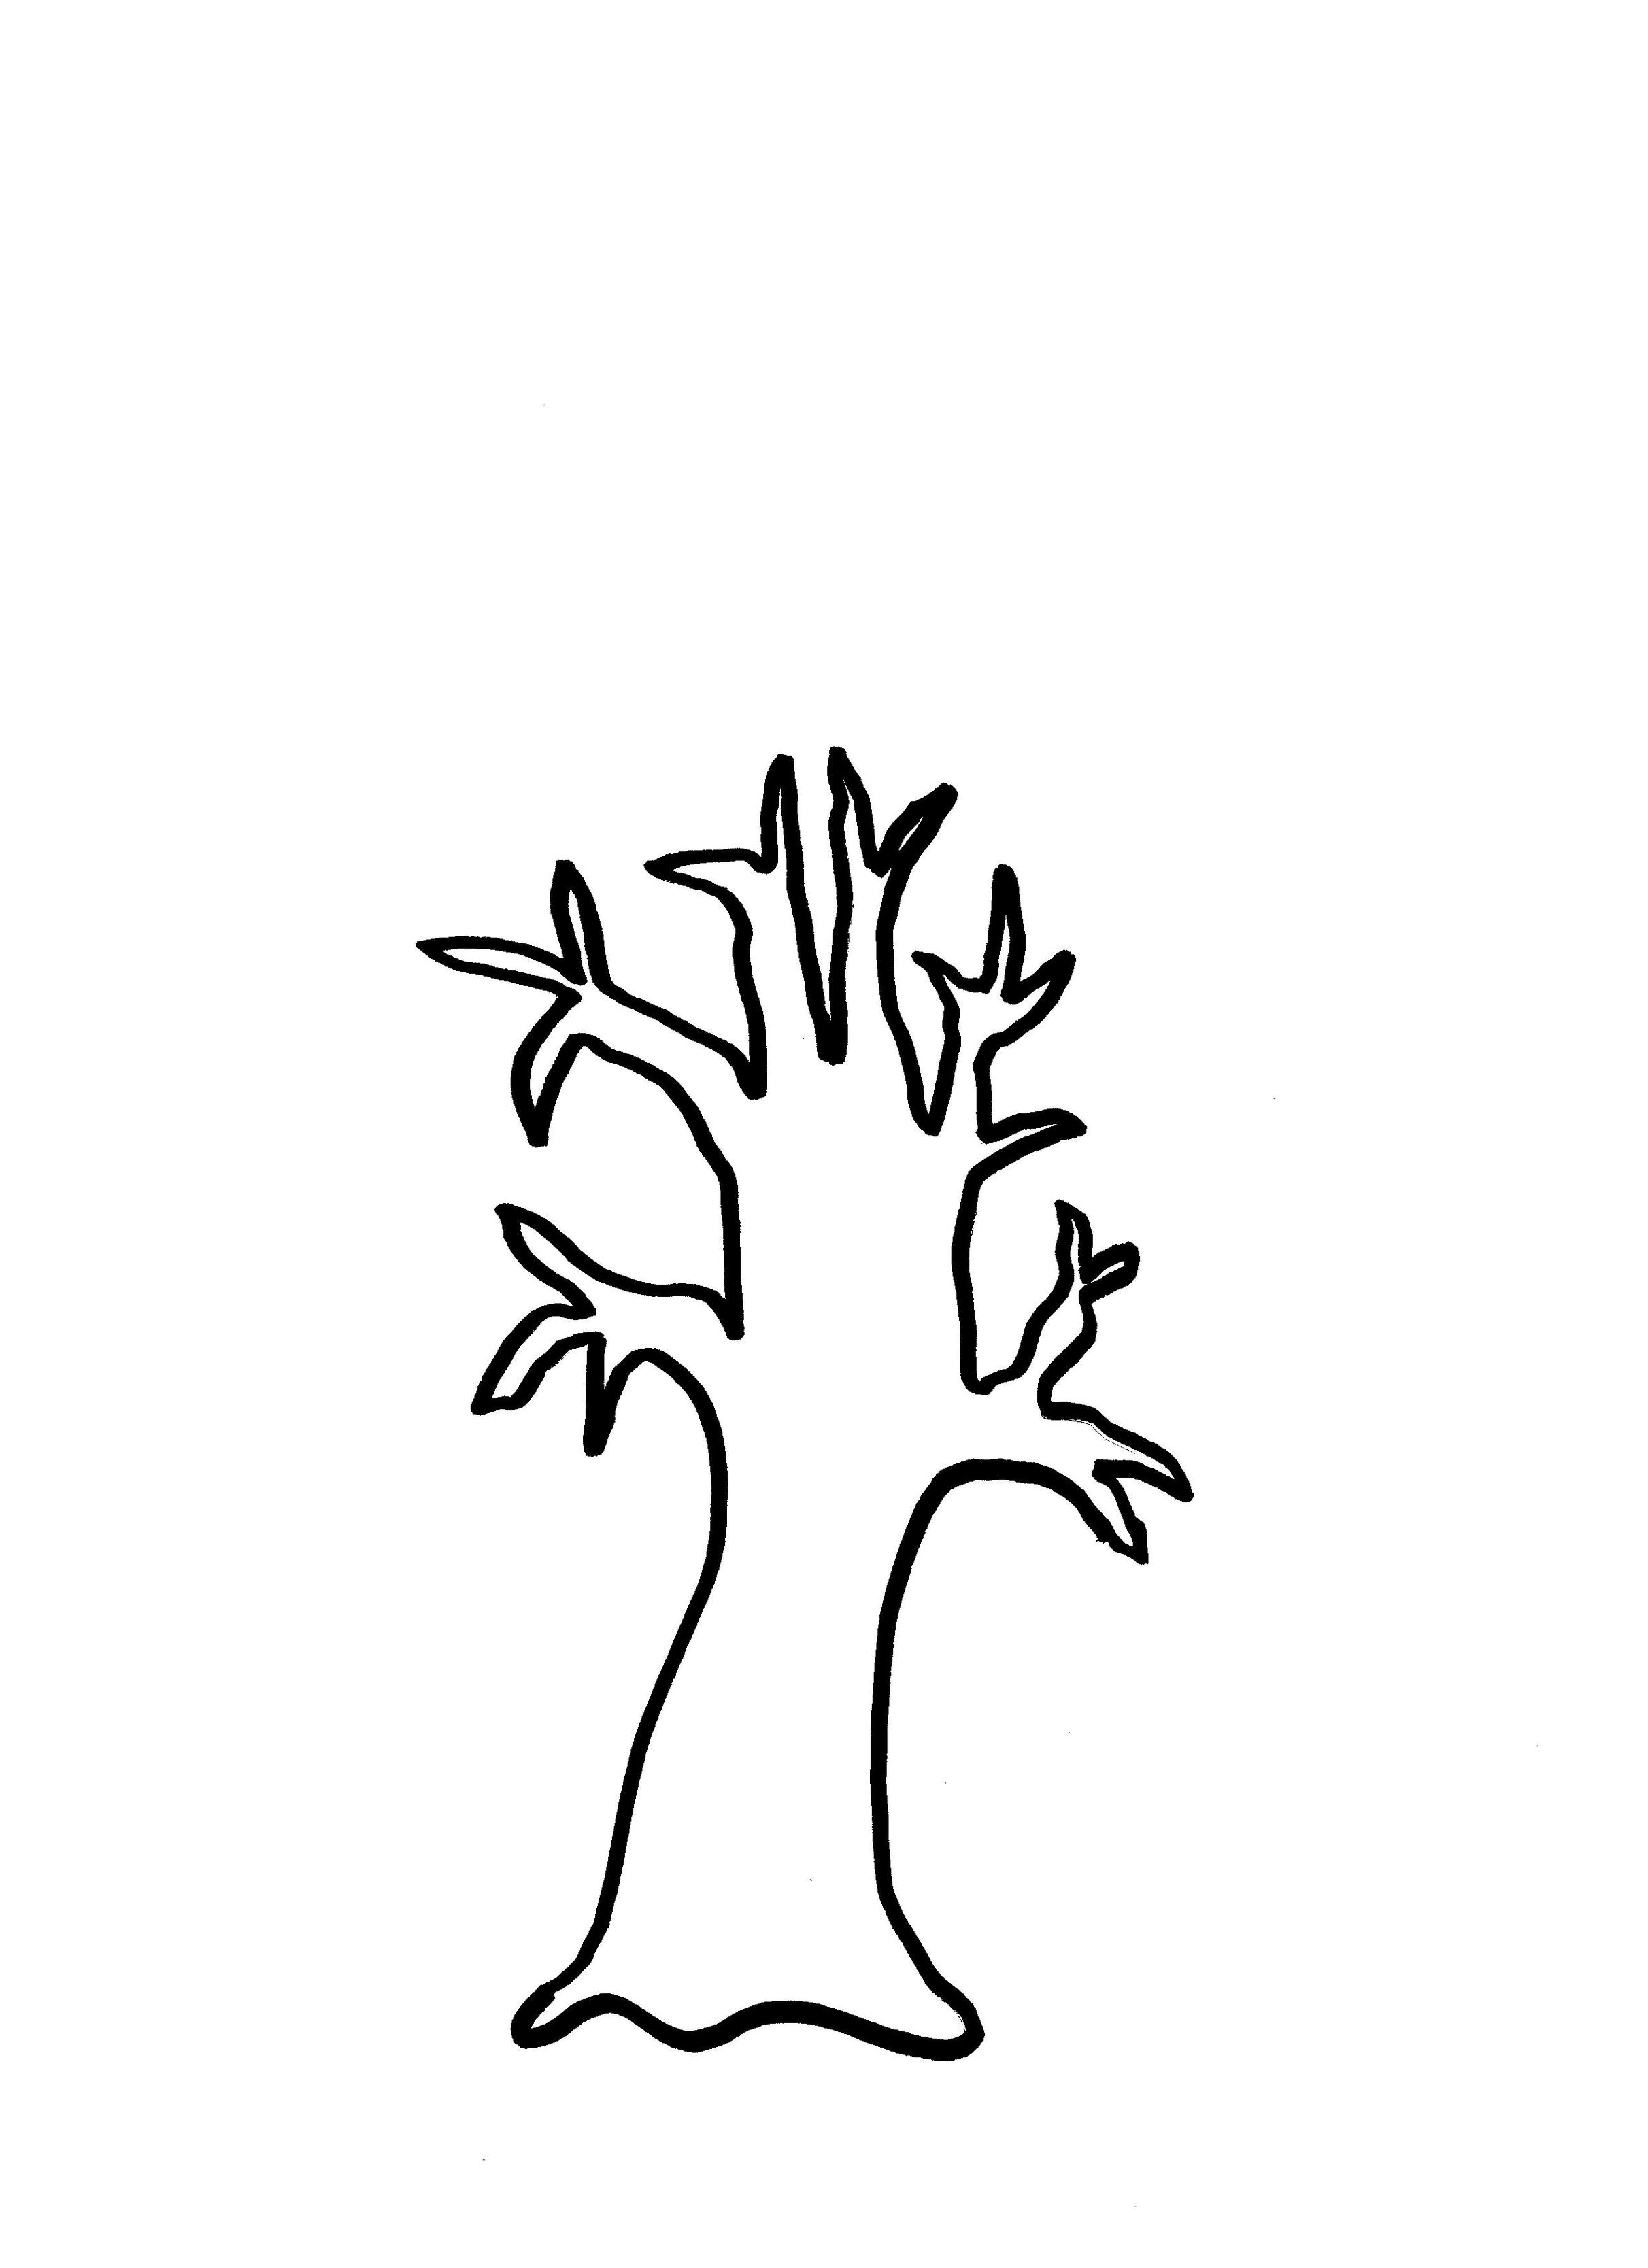 Coloring Page Of A Tree Trunk